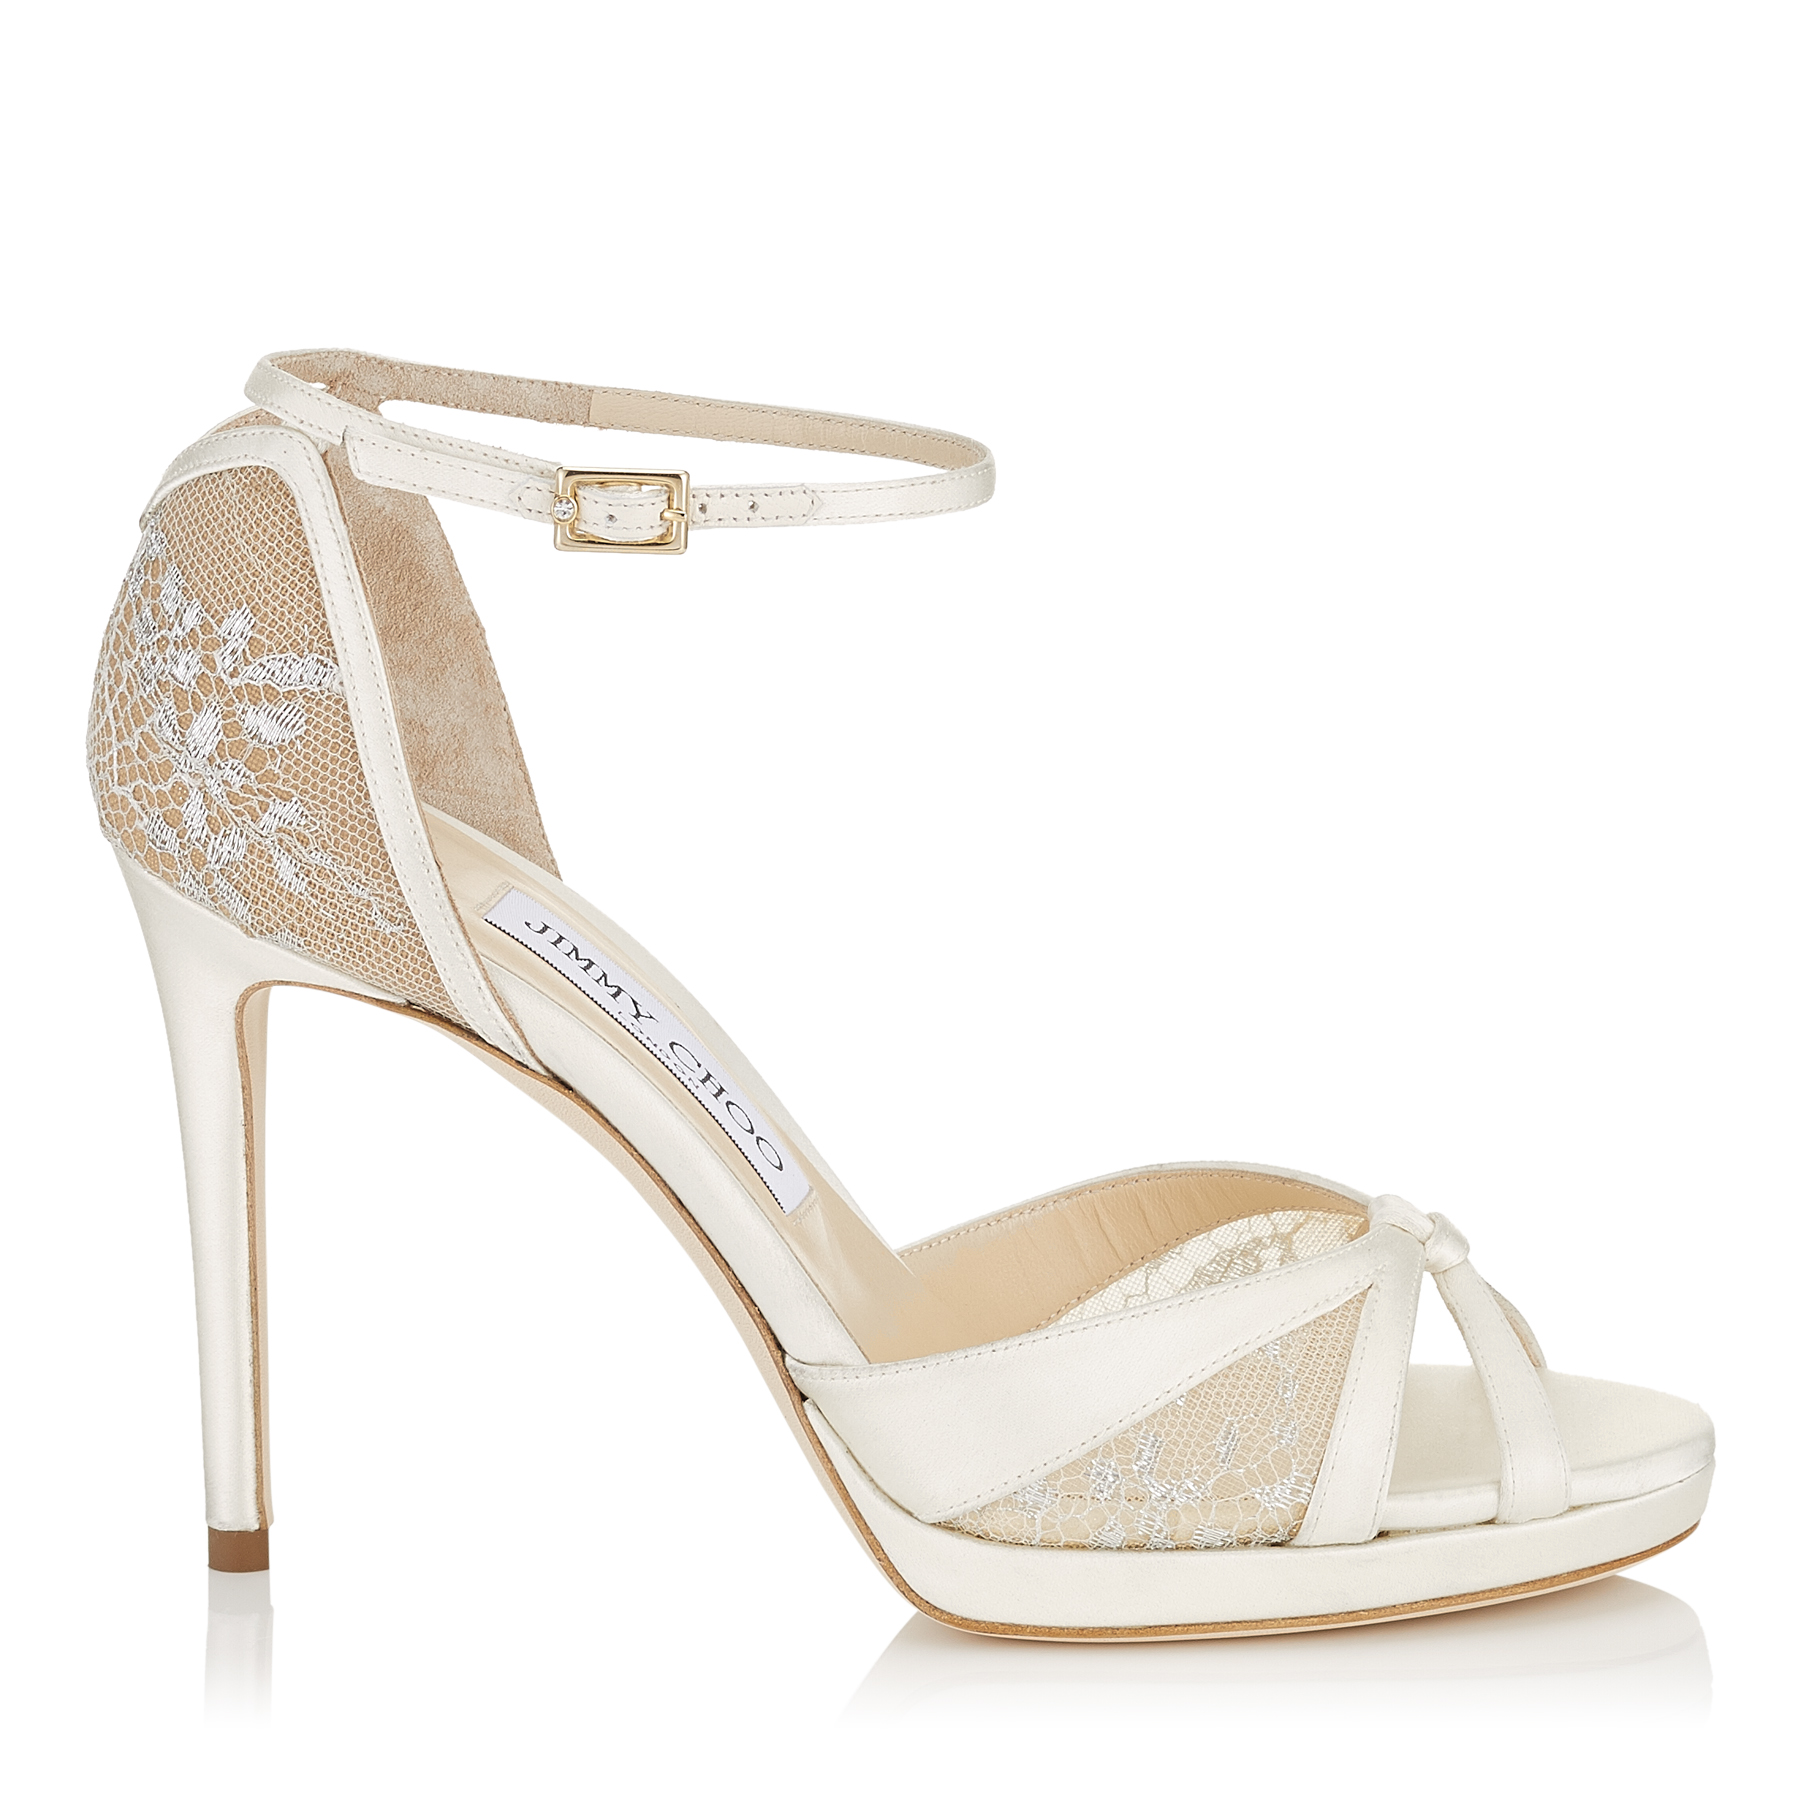 TALIA 100 Ivory Satin and White Lace Sandals by Jimmy Choo